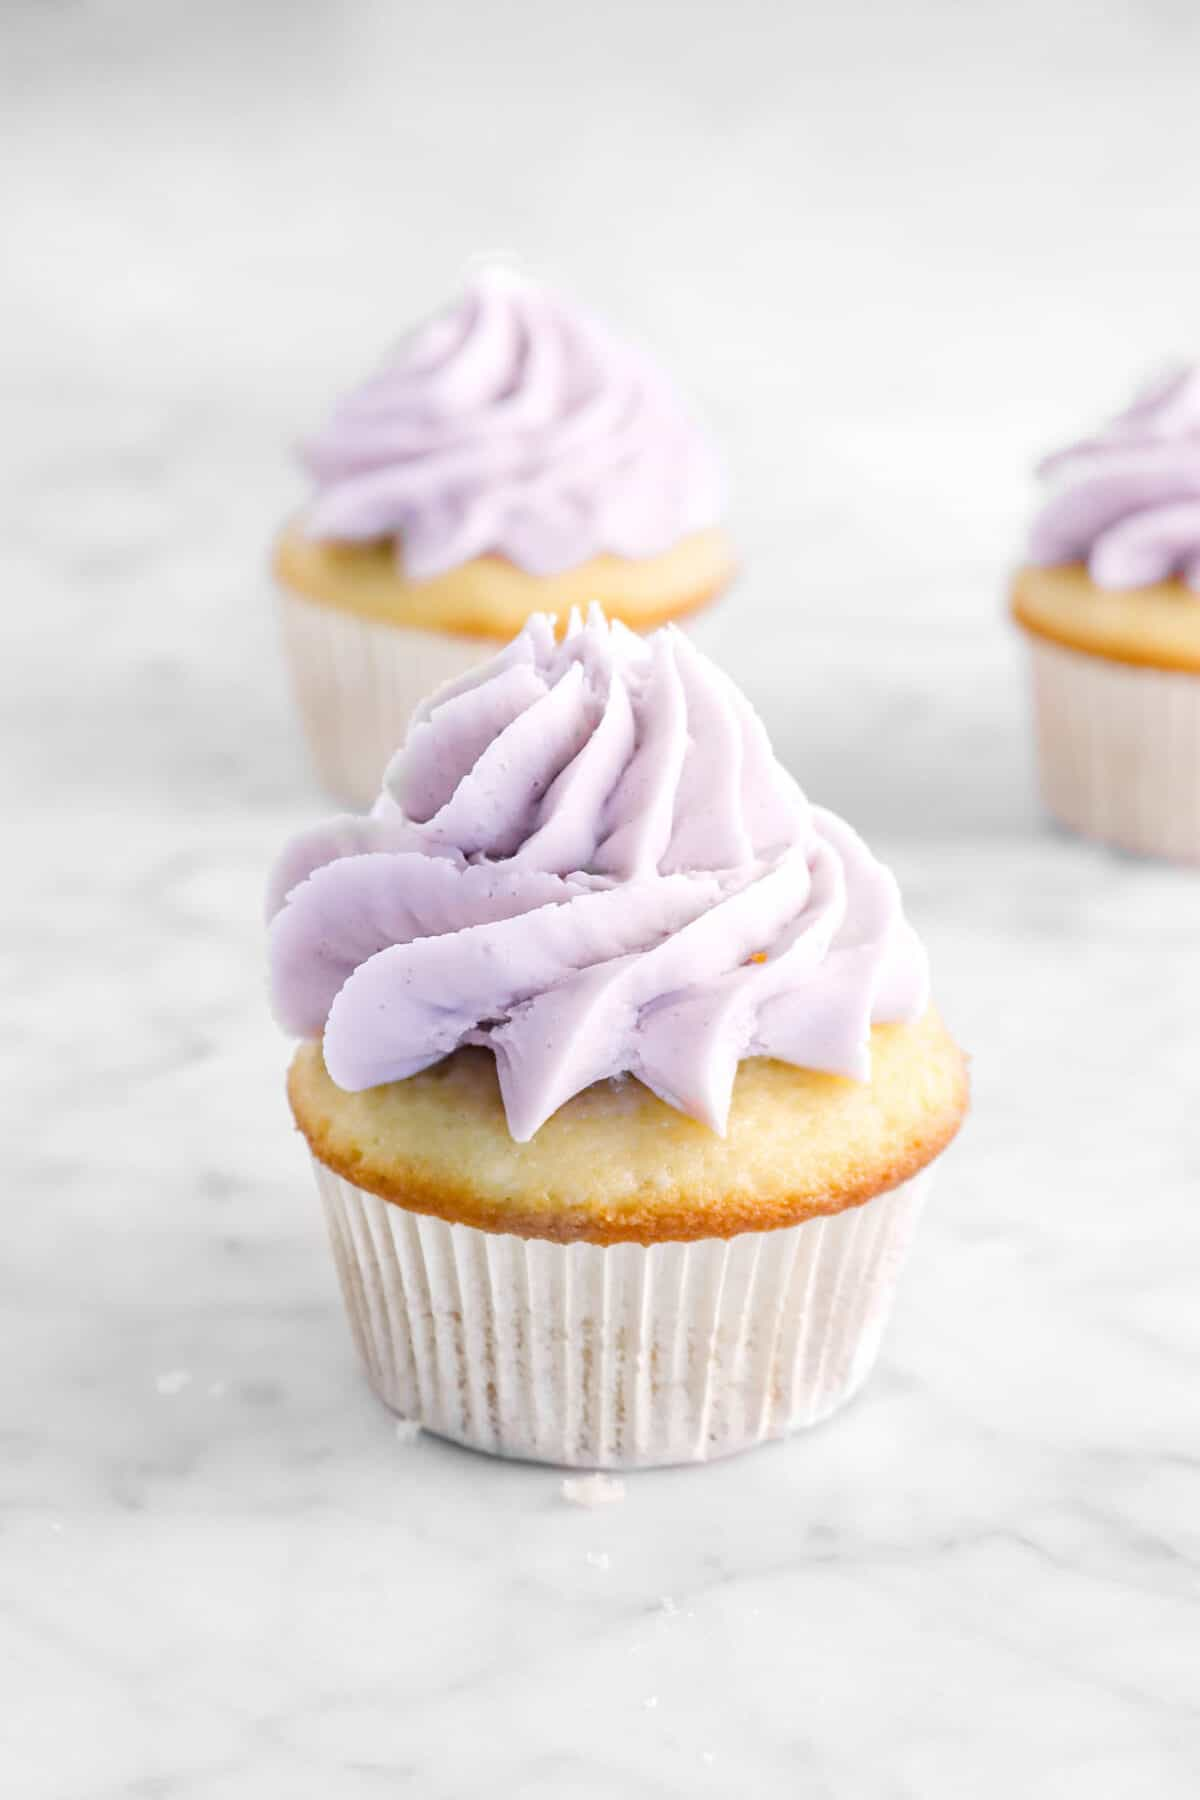 three cupcakes with lavender frosting on top